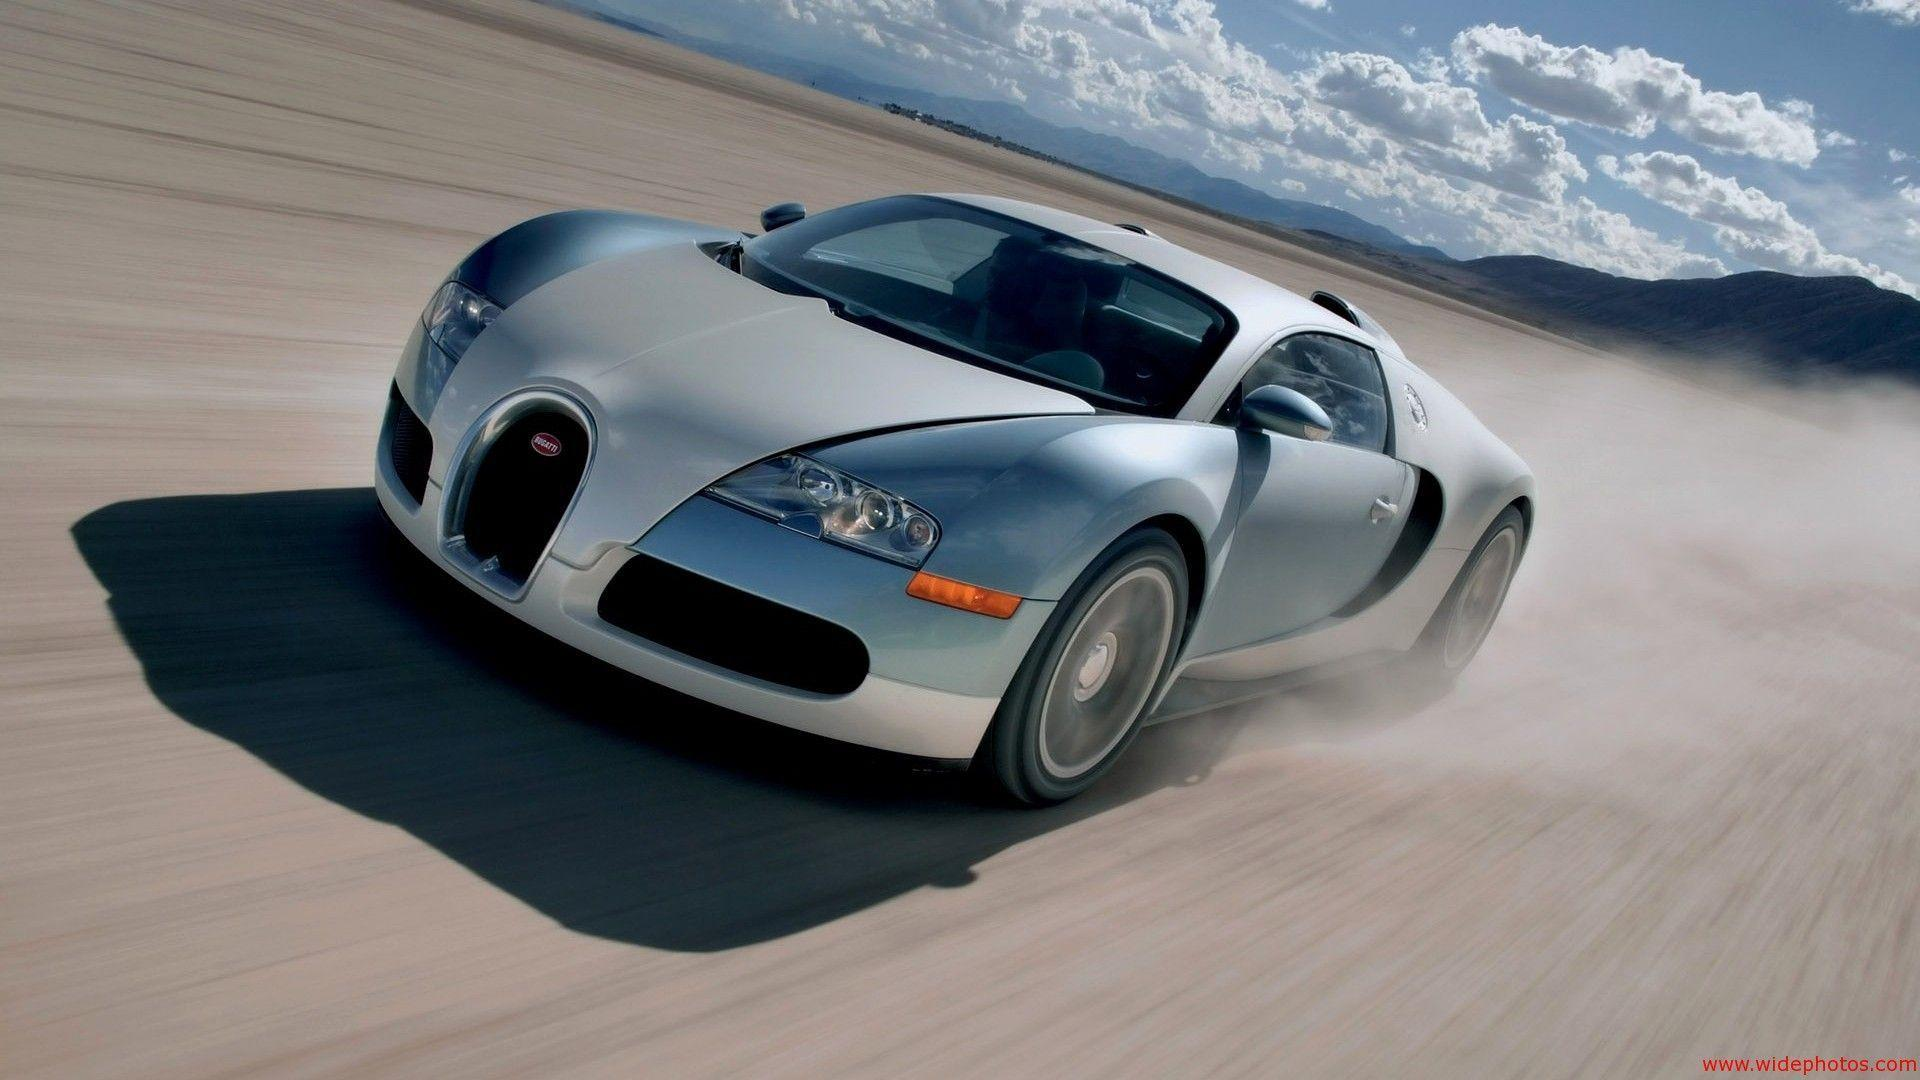 Hd wallpapers Cool Sports Car desktop | Background HD Wallpaper ...